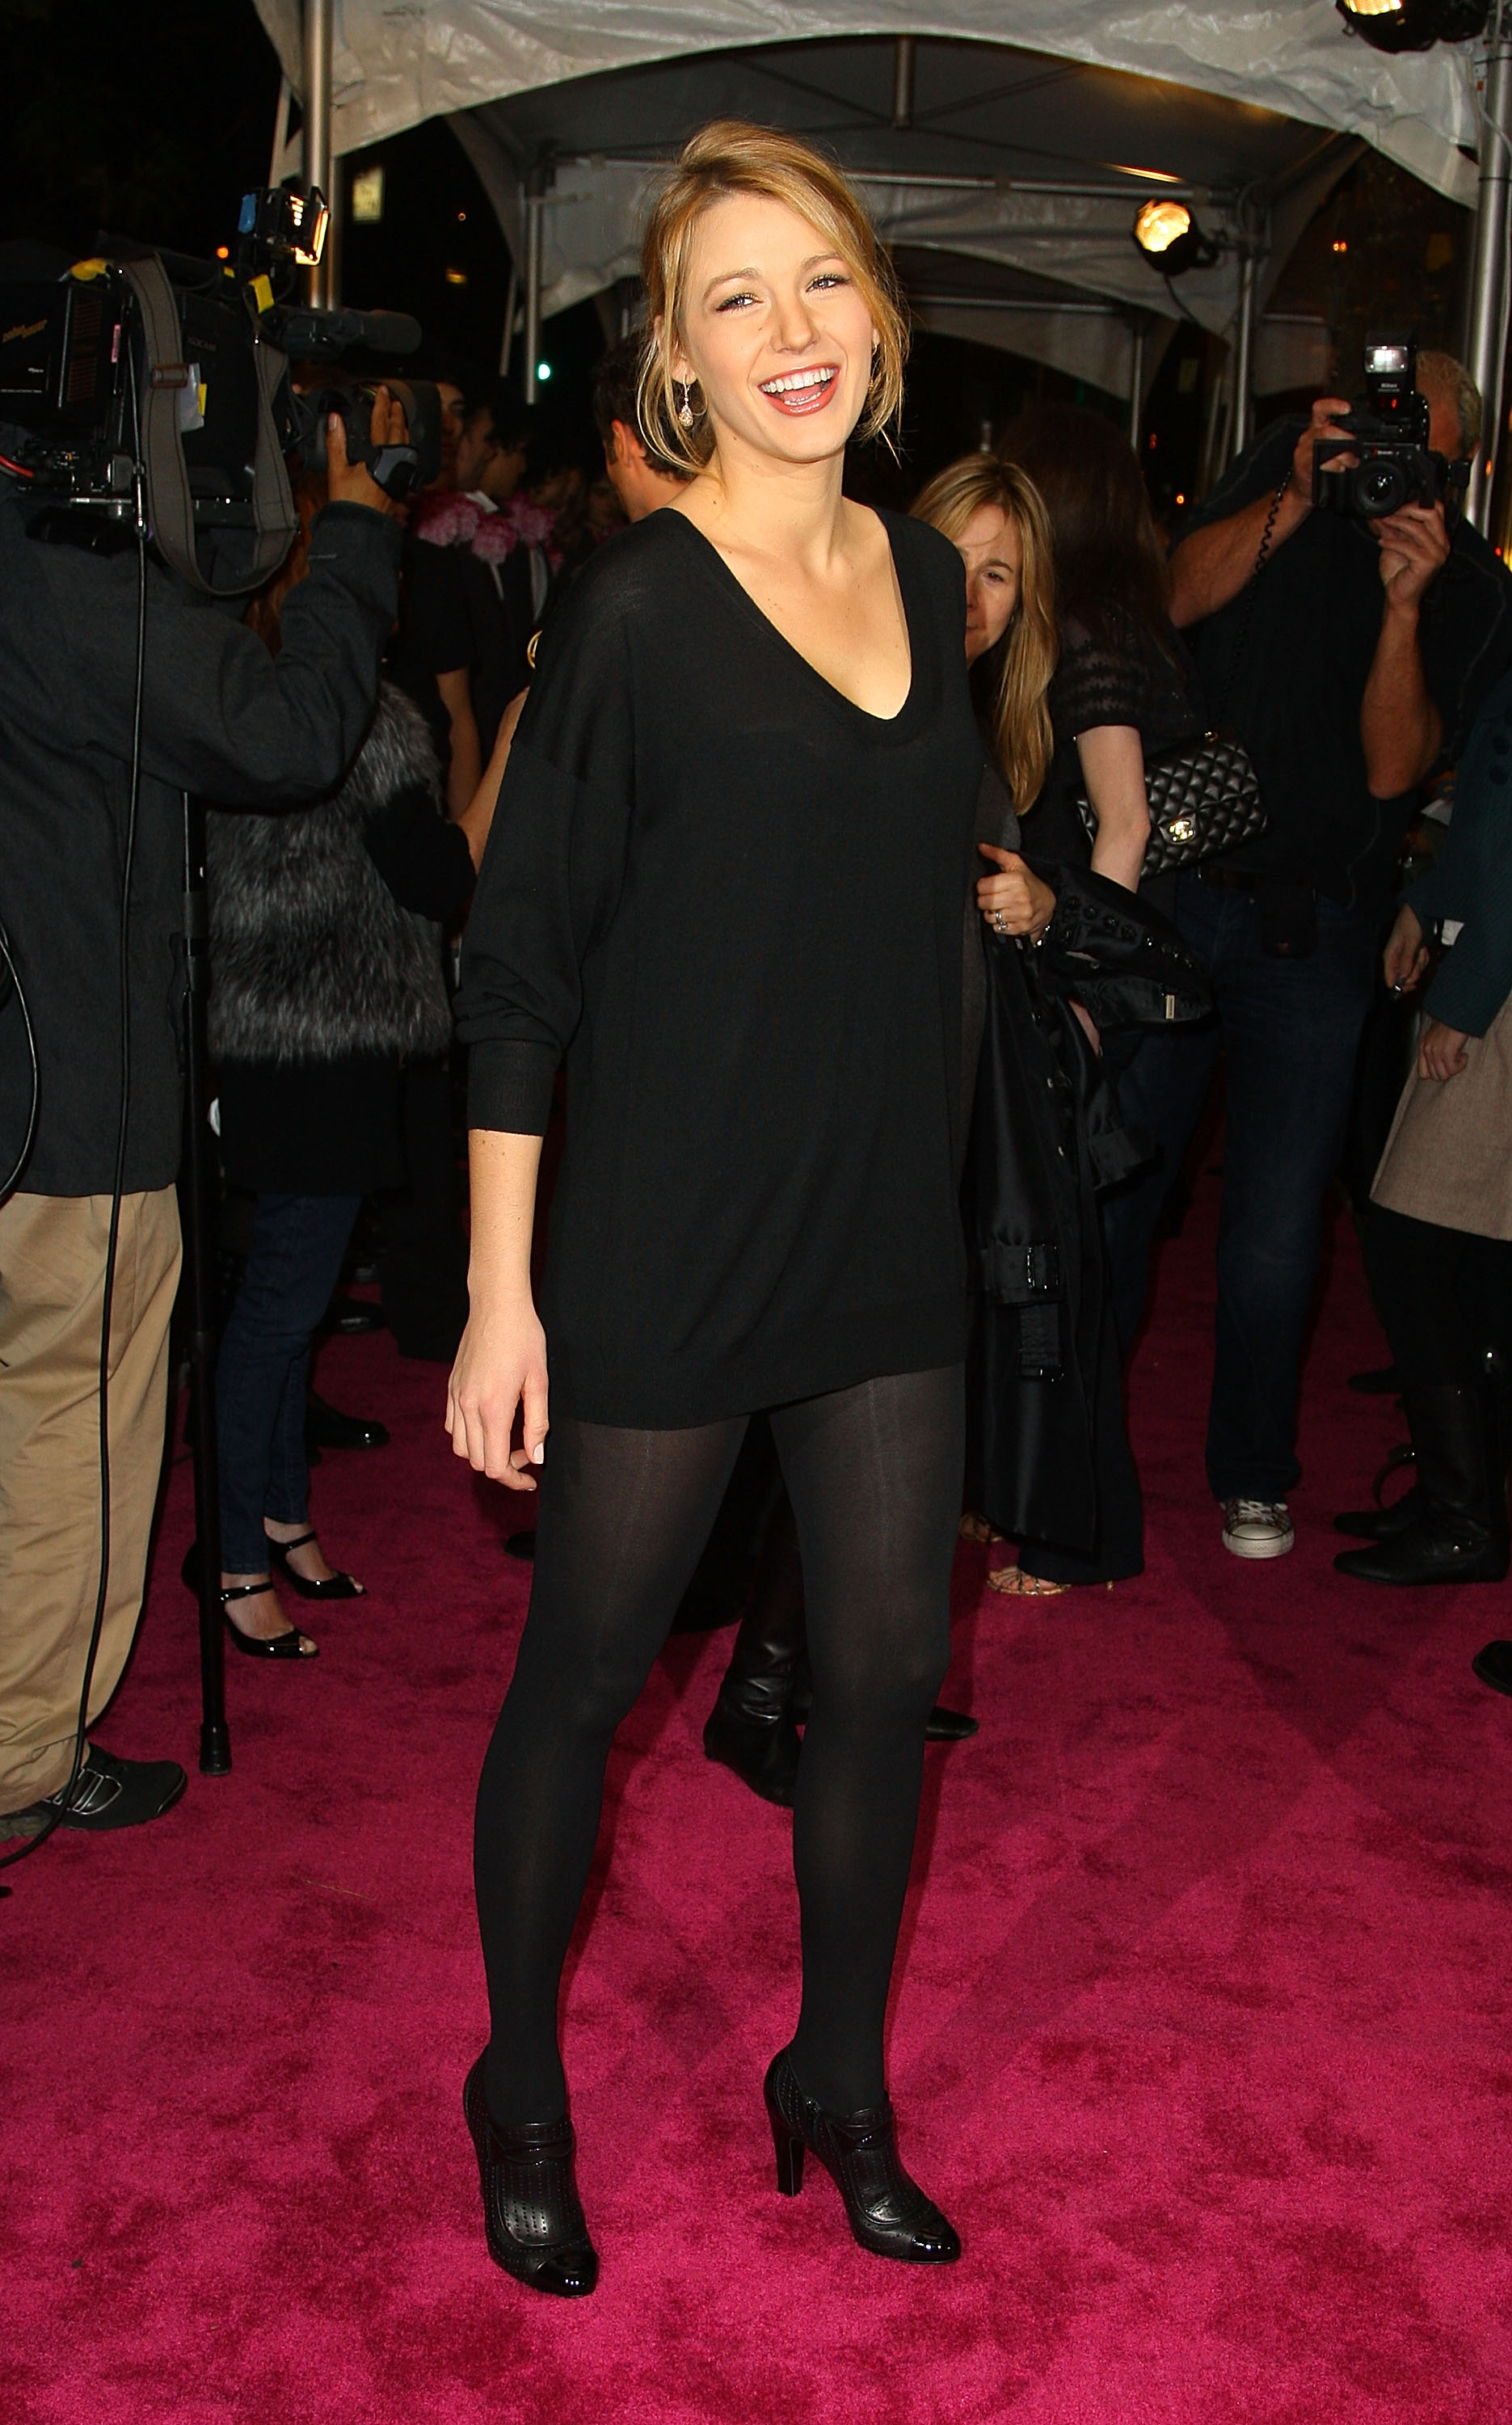 58853_Celebutopia-Blake_Lively-Opening_party_for_Juicy_Couture58s_5th_Avenue_flagship_store-07_122_1120lo.jpg